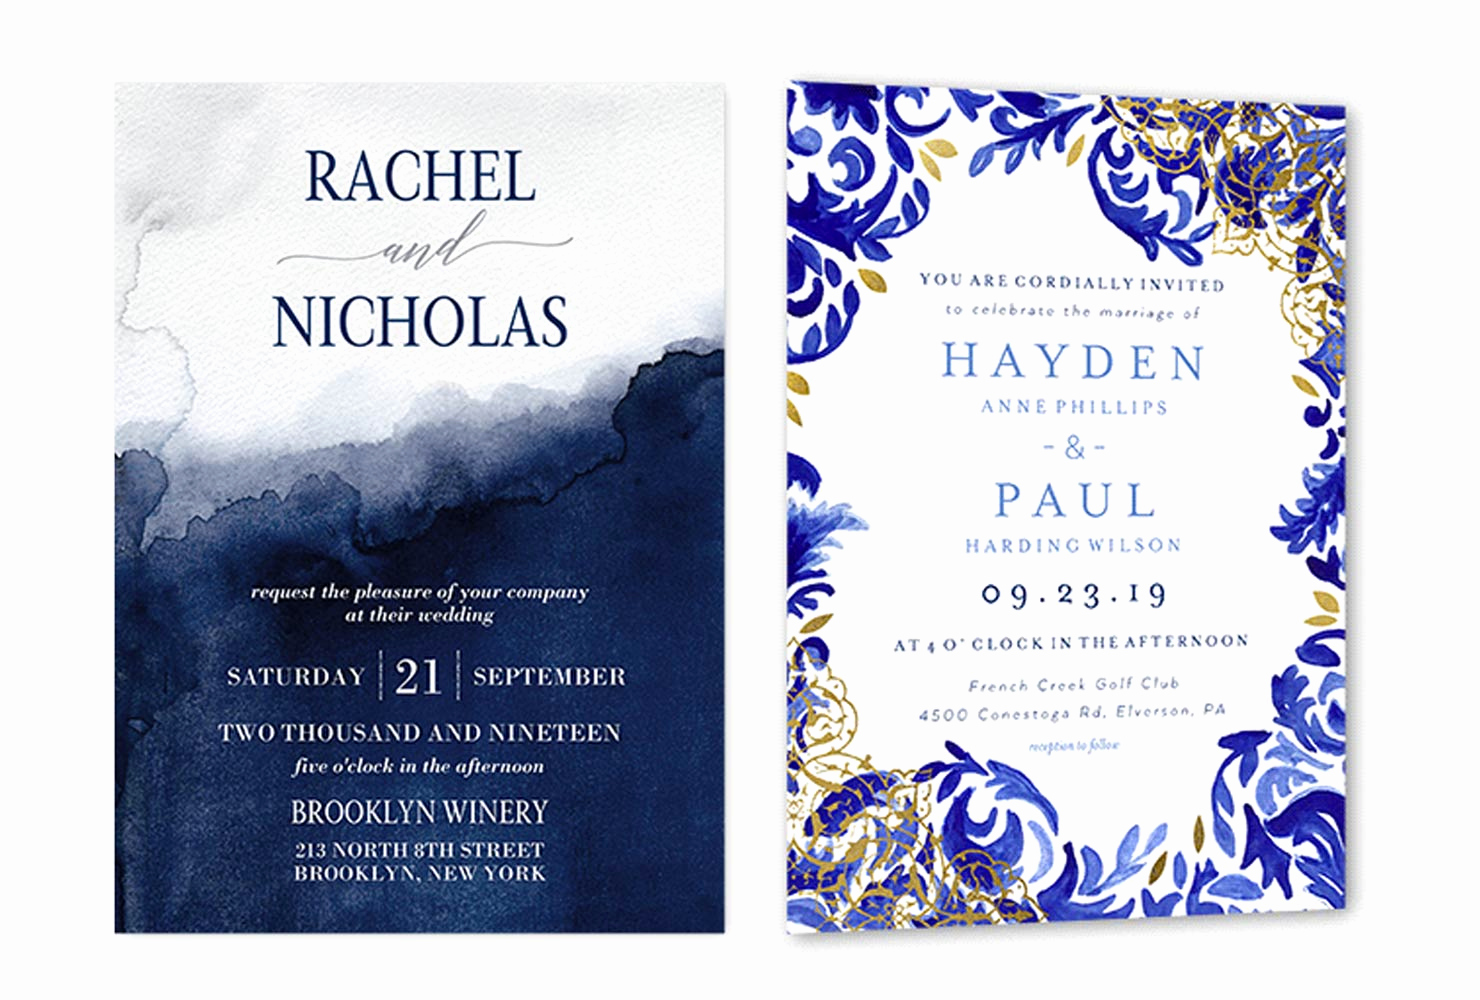 No Host Dinner Invitation Best Of 35 Wedding Invitation Wording Examples 2019